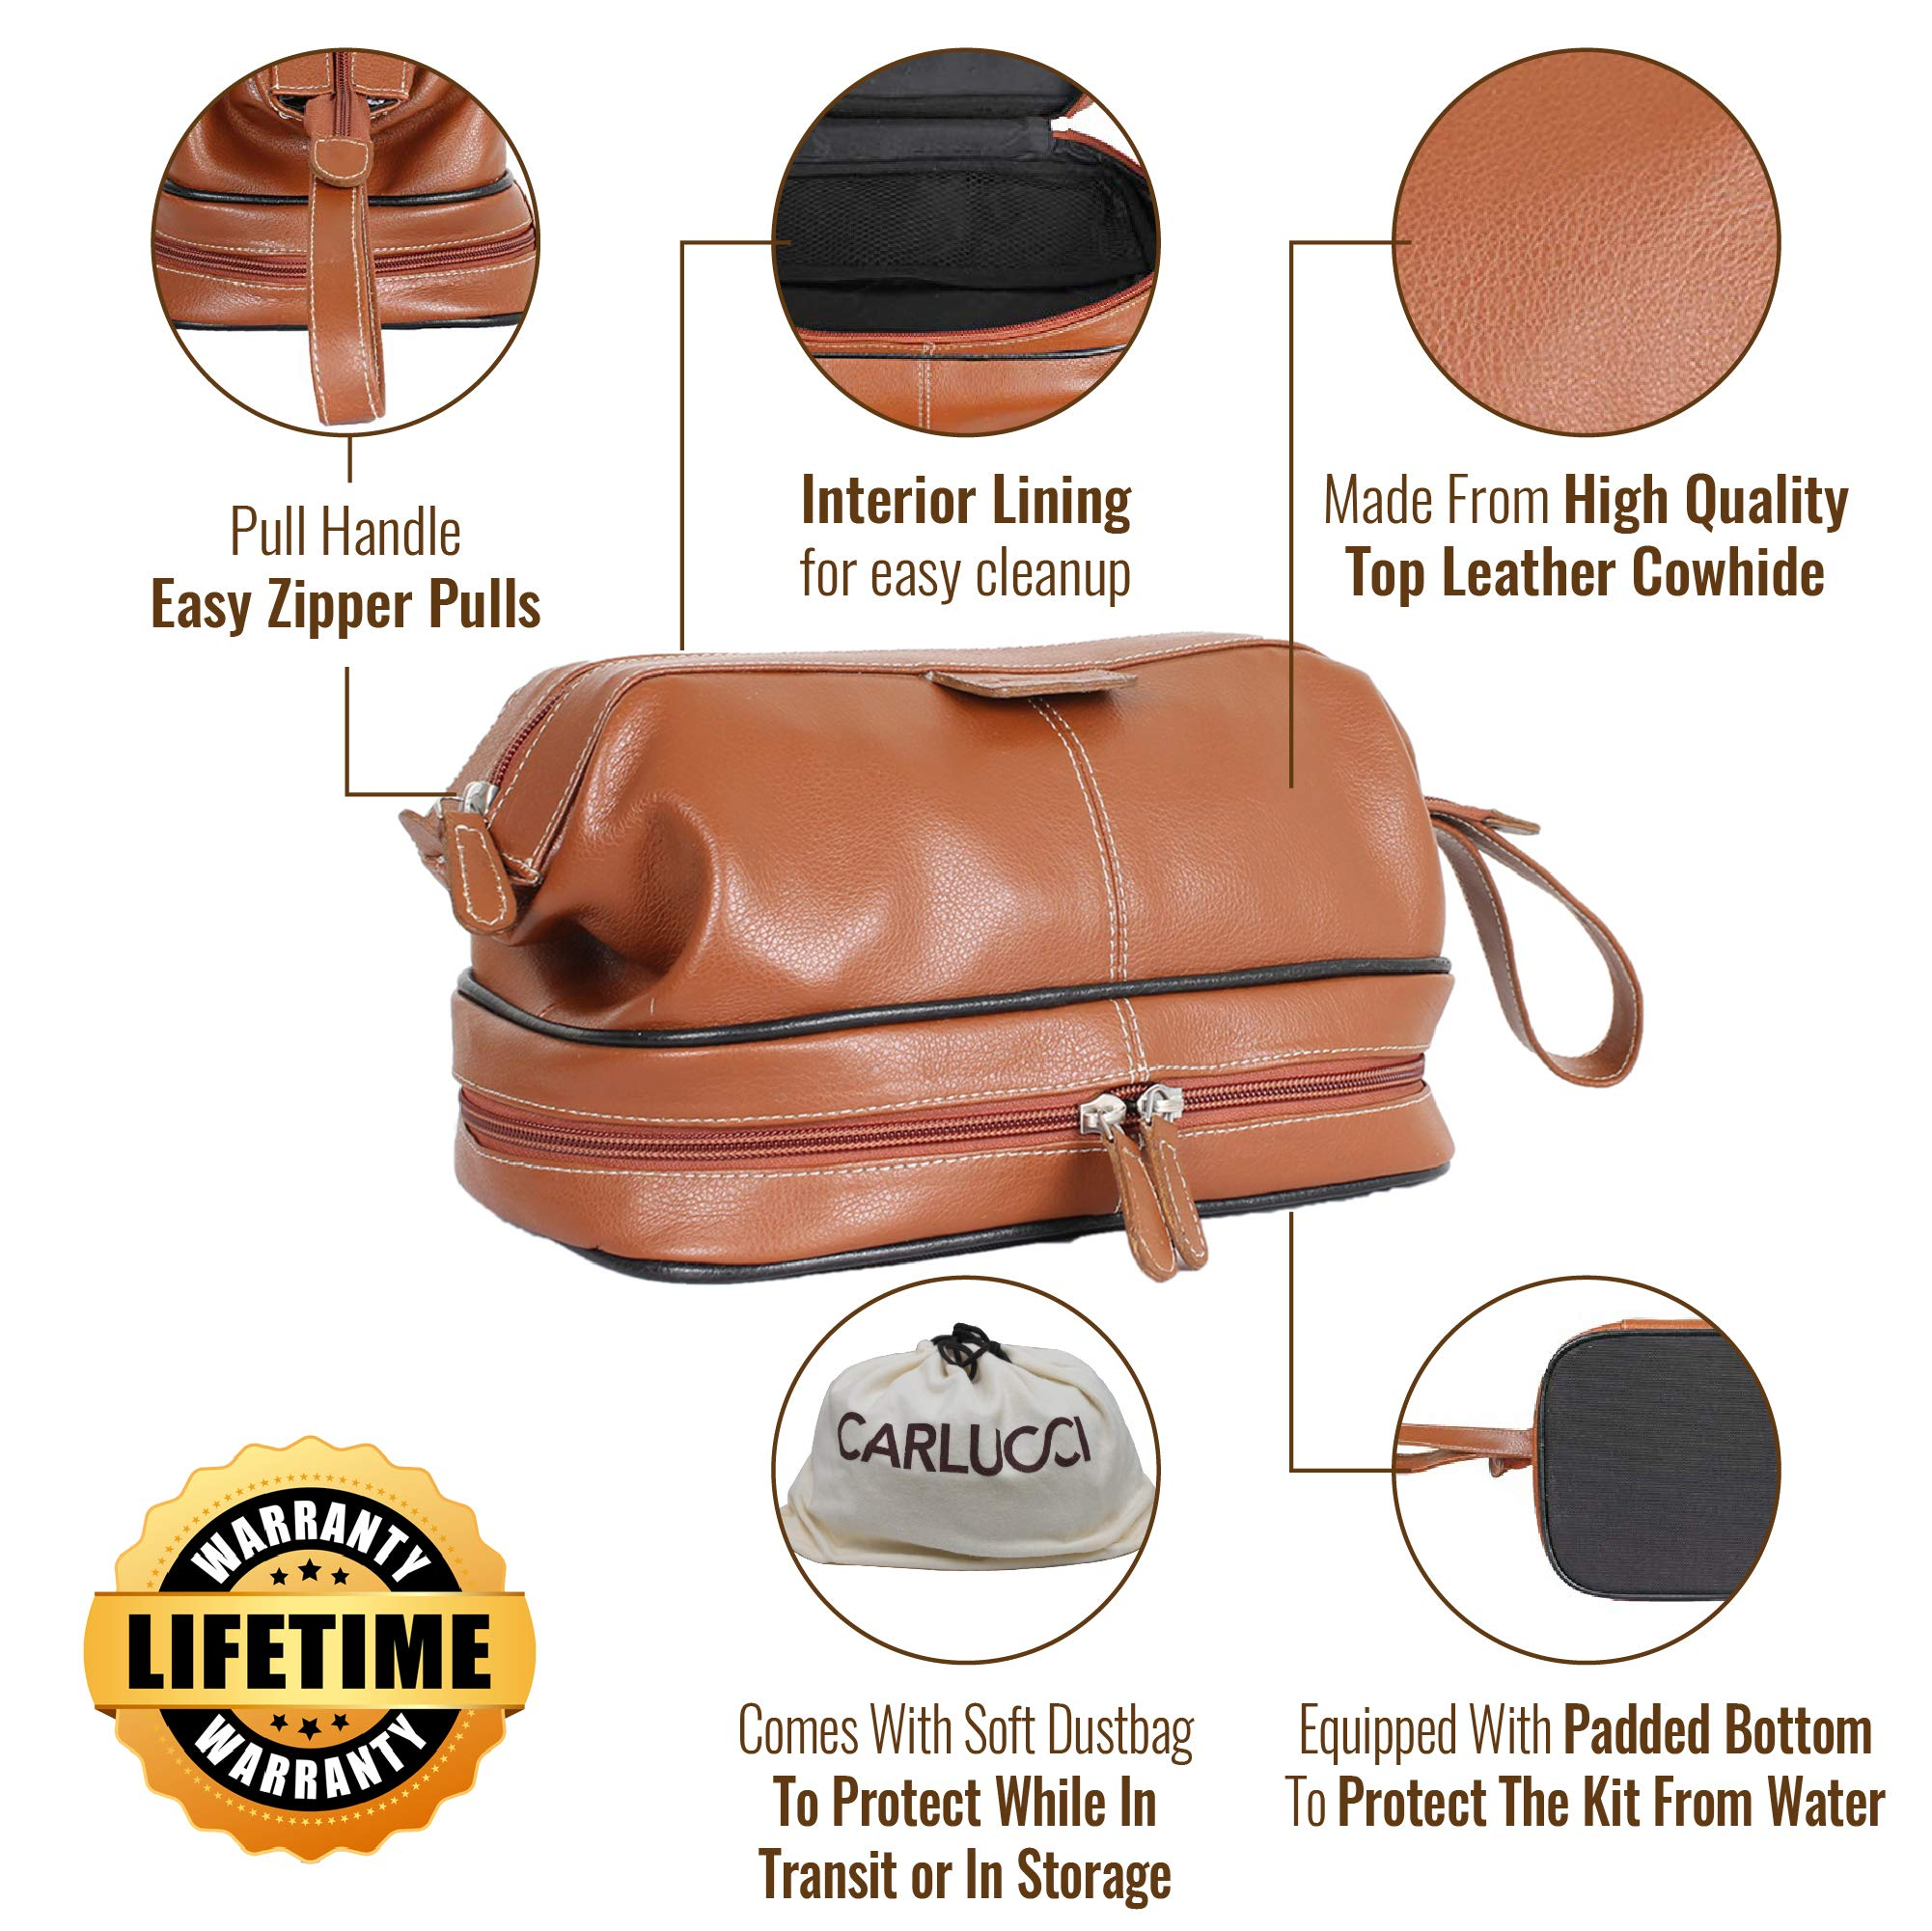 Carlucci Leather Premier Leather Toiletry Bag with Zip Drop Bottom, Rich Genuine Cowhide, 2 Big Compartments, Heavy Duty Zippers, Pull Handle, Leather Tabs. In Black by CARLUCCI LEATHER